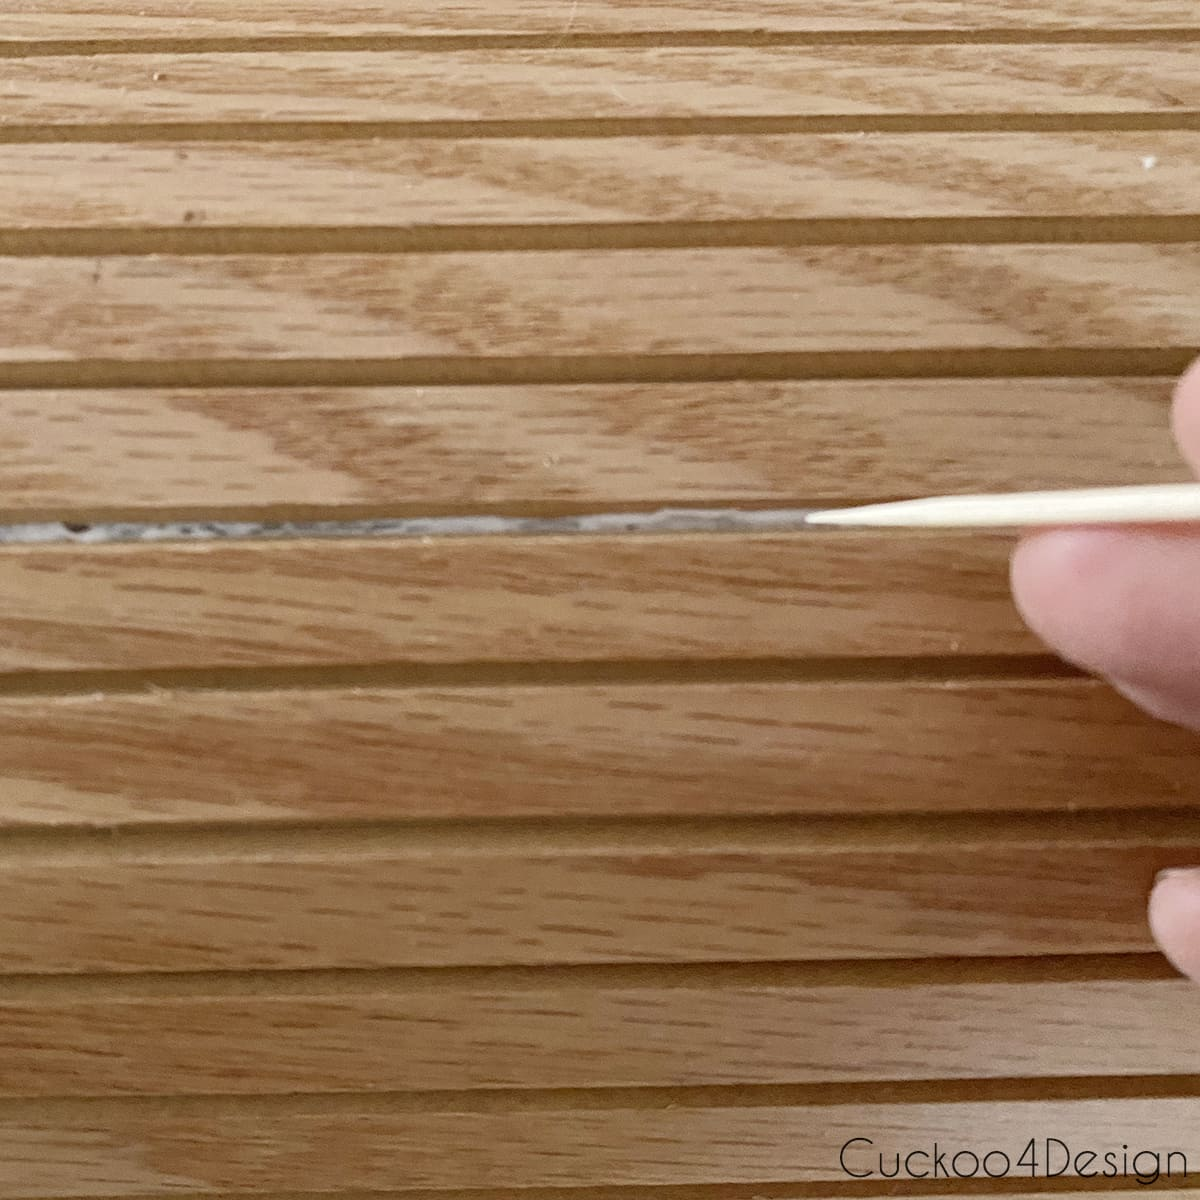 cleaning seam of fluted molding with toothpick